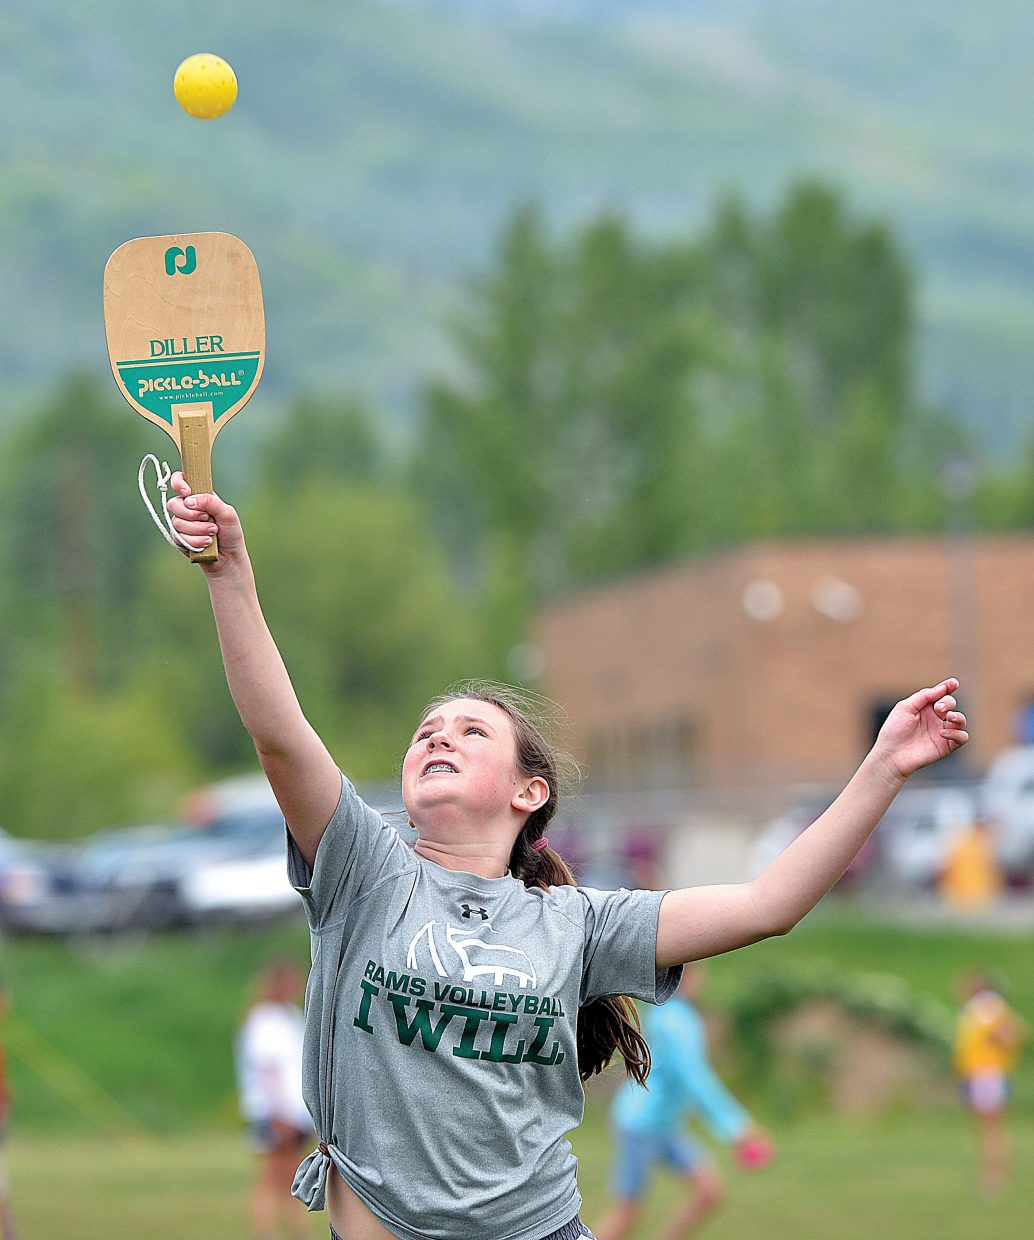 Amber Townsend returns a shot while playing pickleball during field day on the final day of classes at Steamboat Springs Middle School on Wednesday.